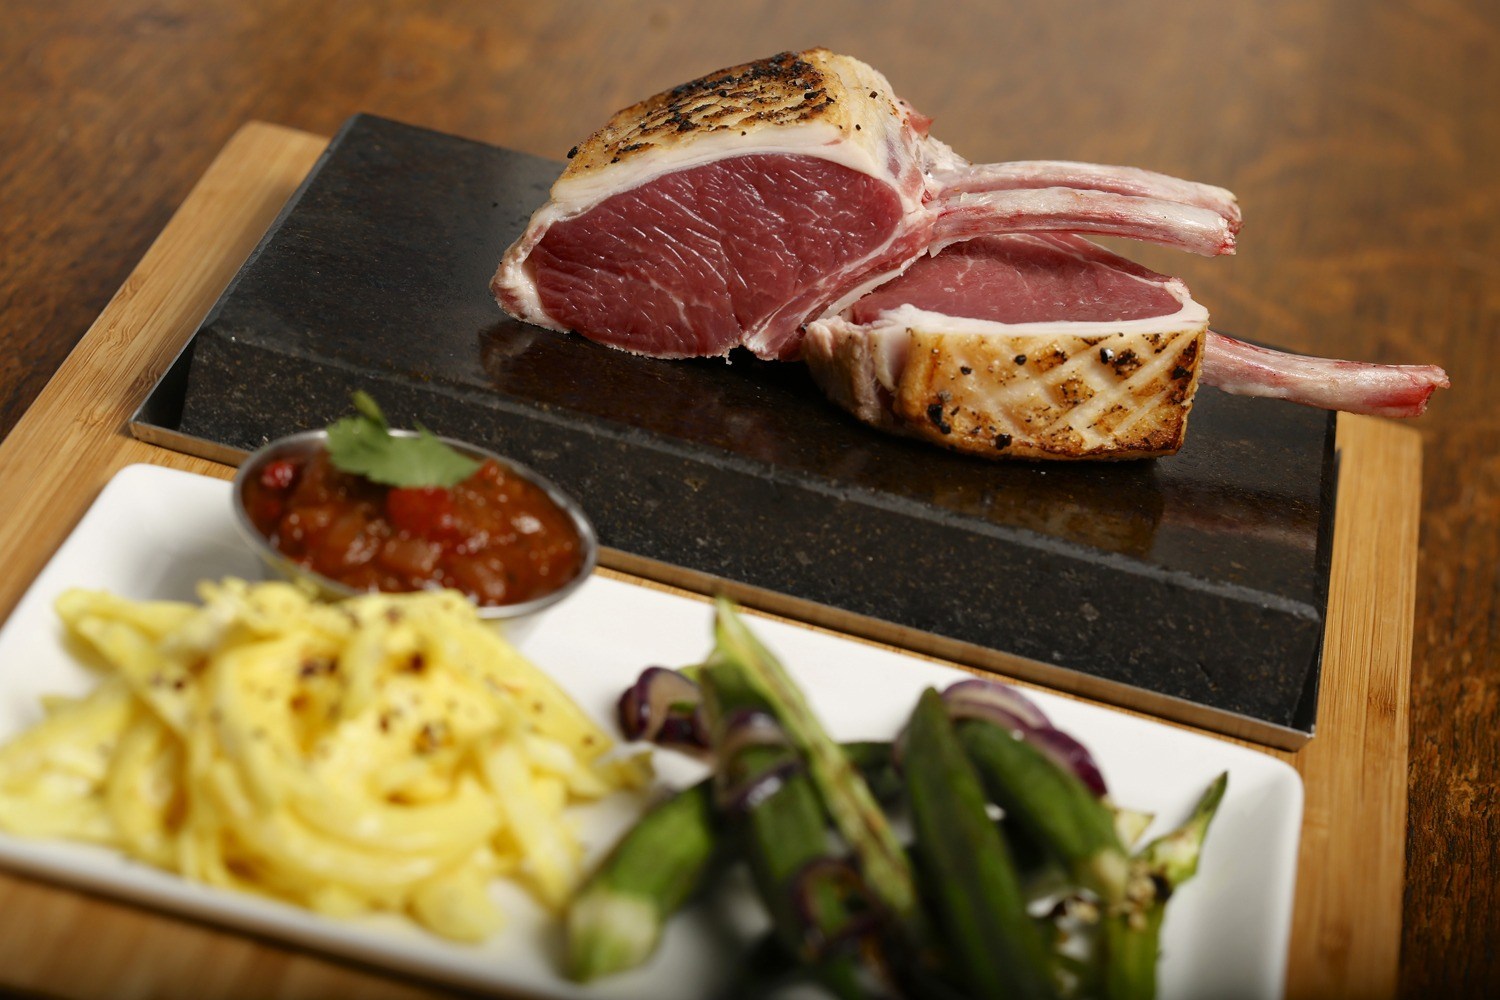 Rack of Lamb Cooked on the Stone. Featuring SteakStones Steak & Sides Set - the best Hot Stone Cooking Products Guaranteed